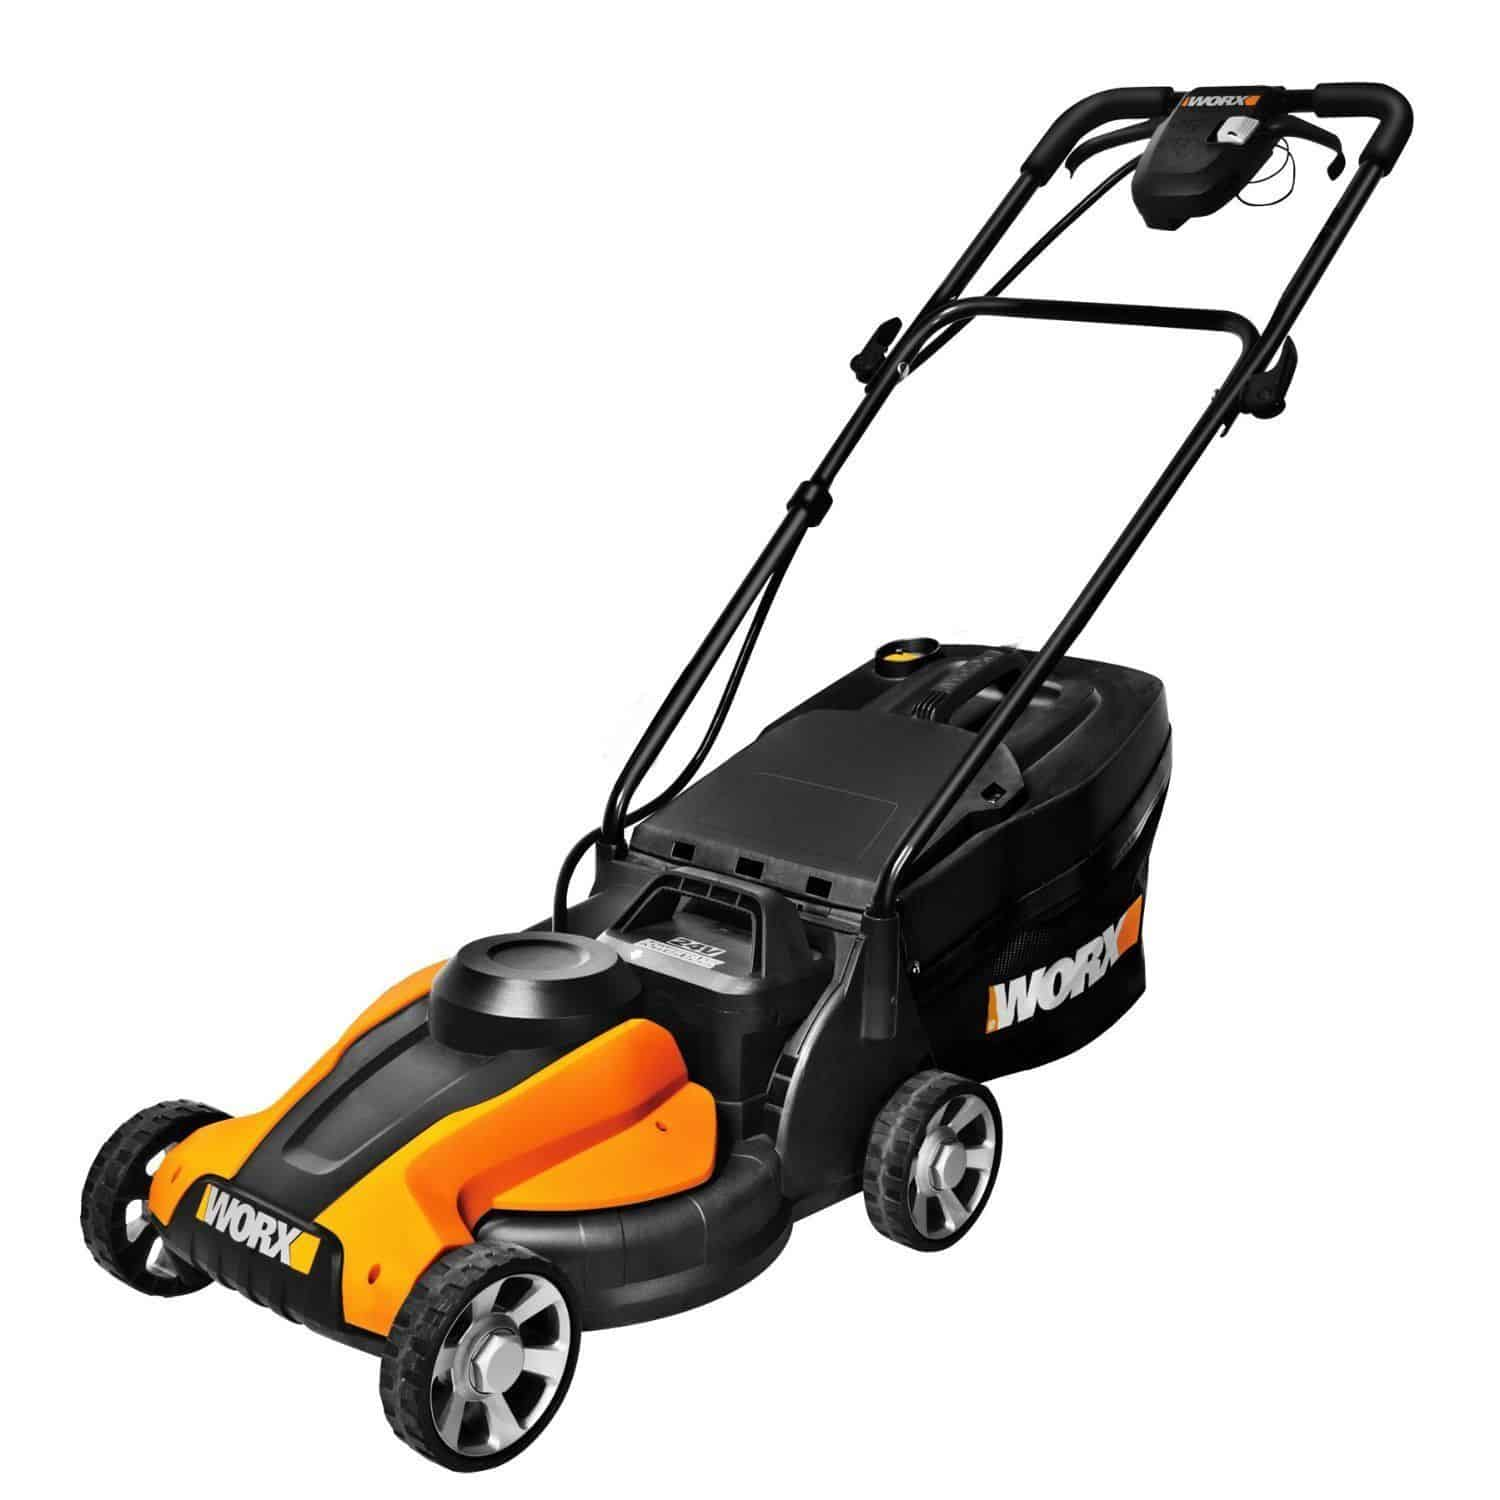 WORX WG779 40V Power Share Lawn Mower - best eco mode lawn mower for small lawn